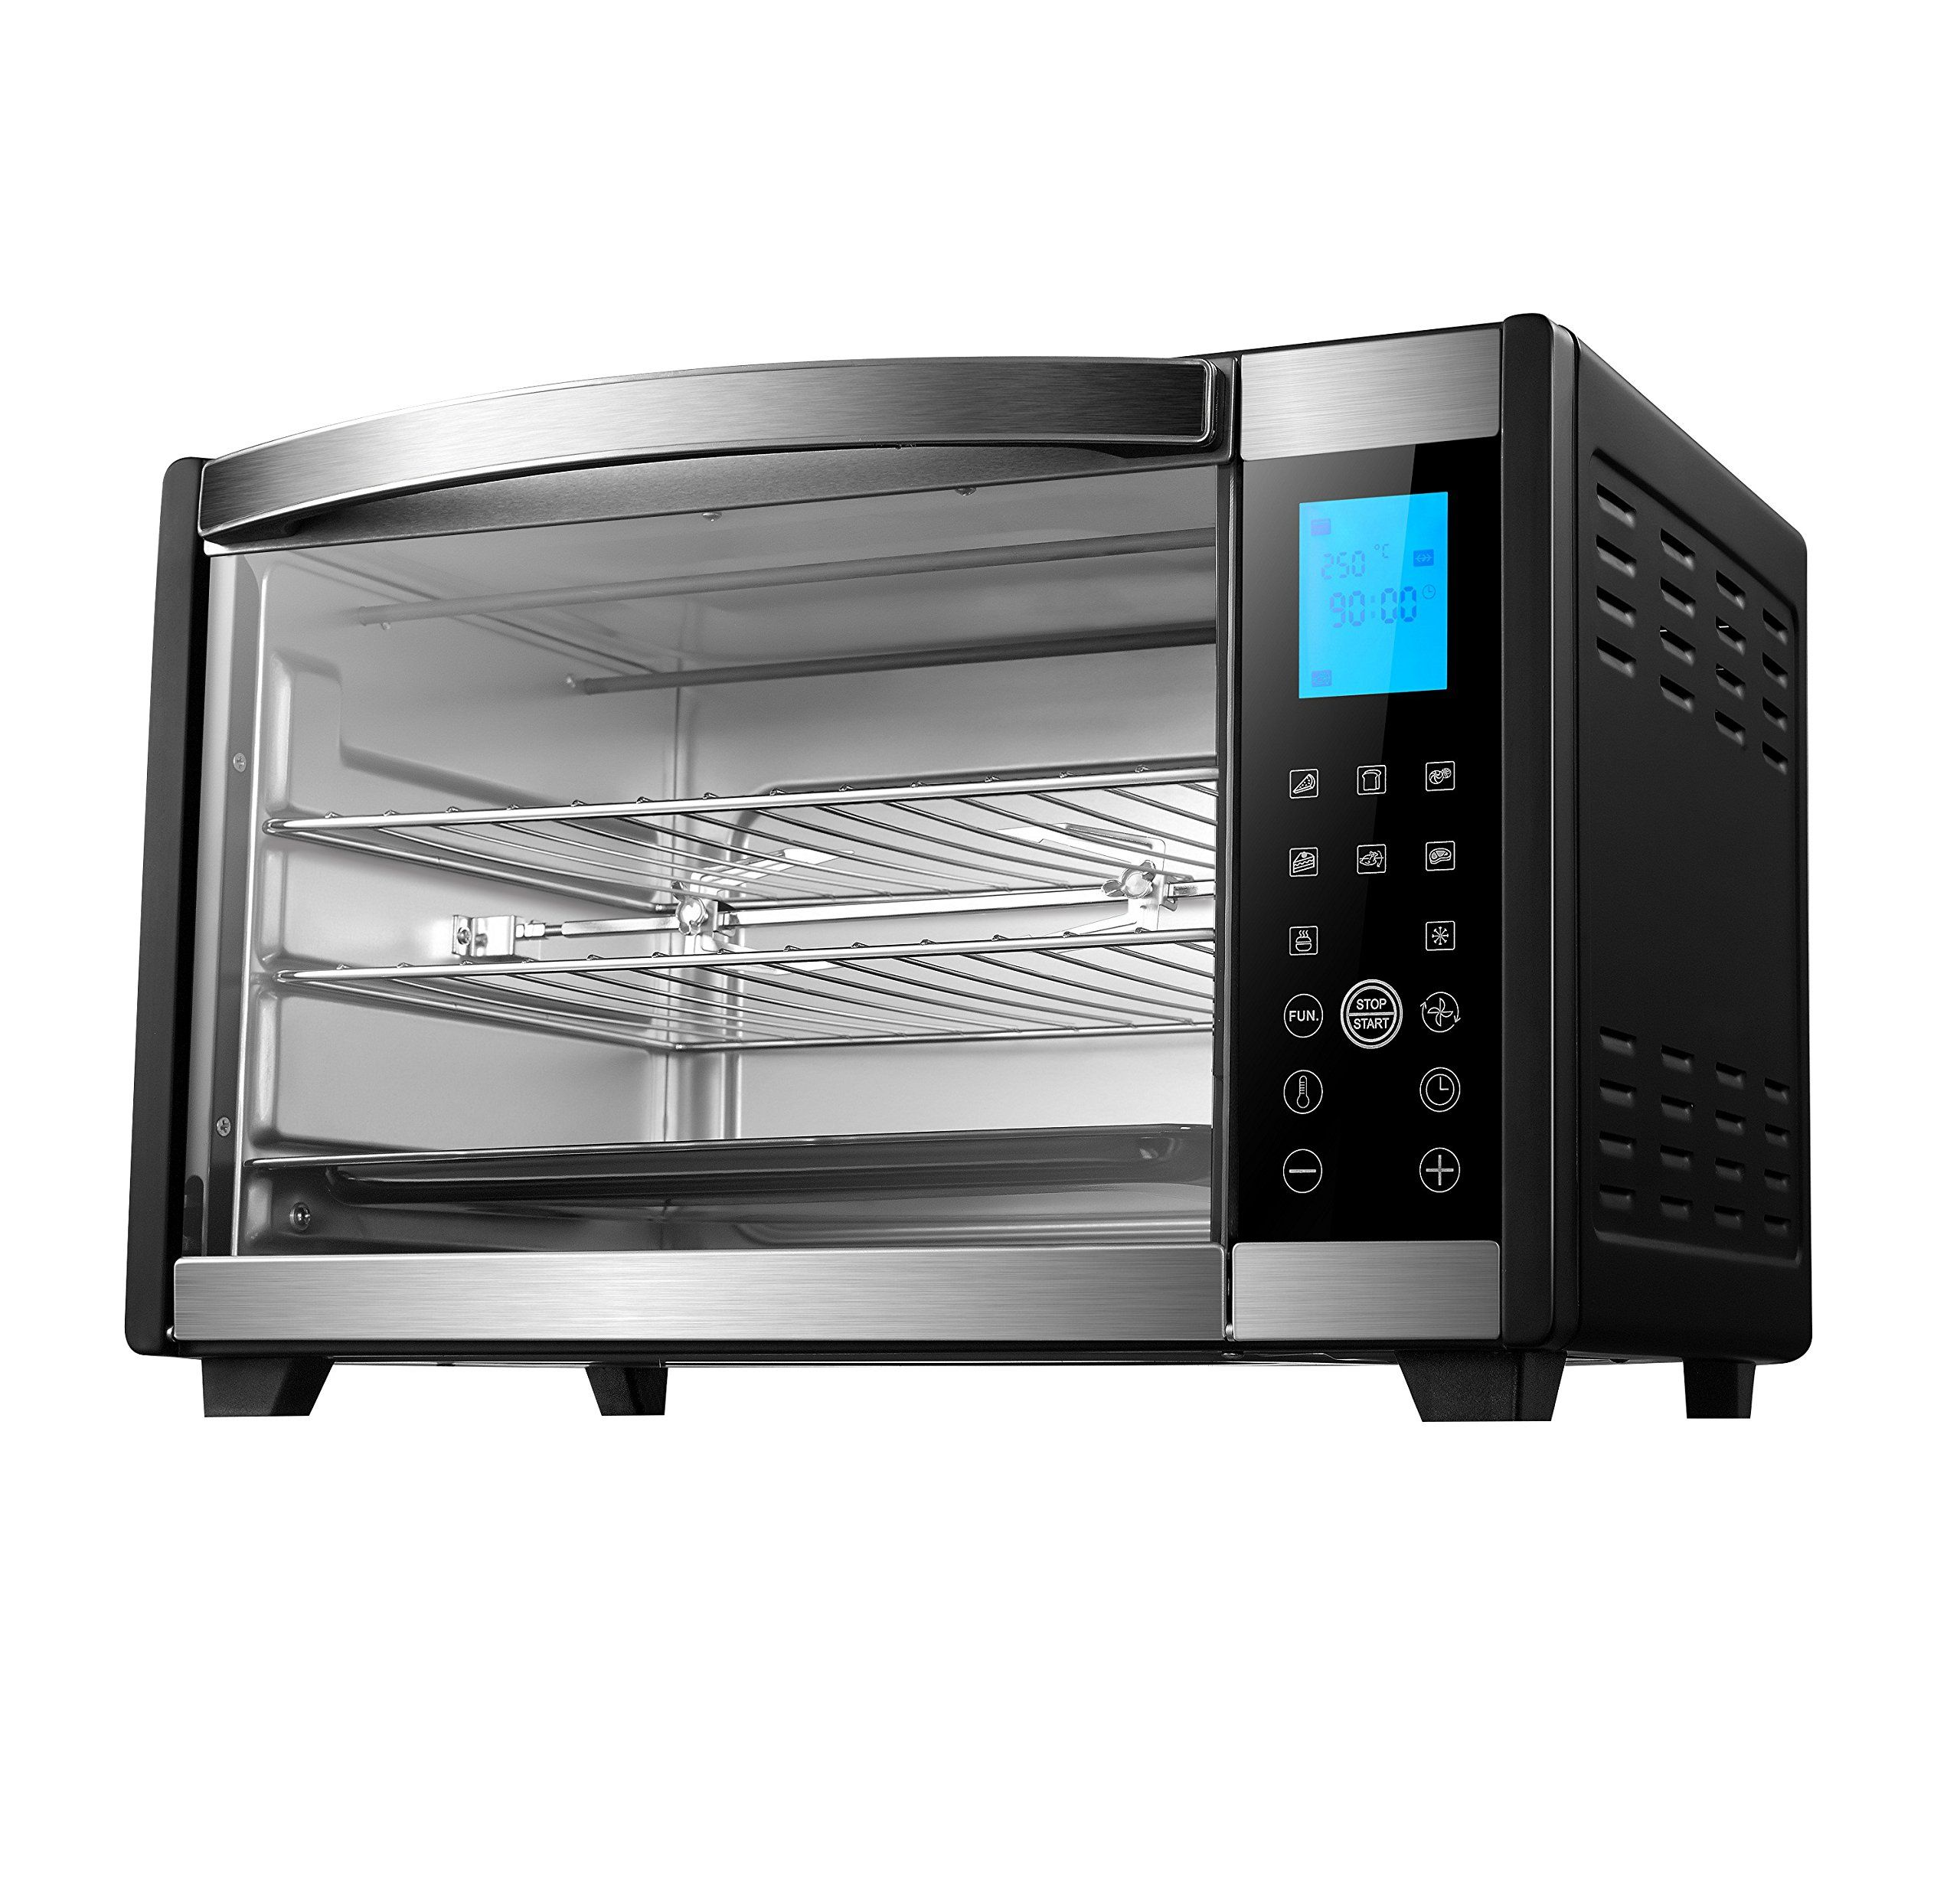 Emerson Convection And Rotisserie Countertop Toaster Oven 6slice